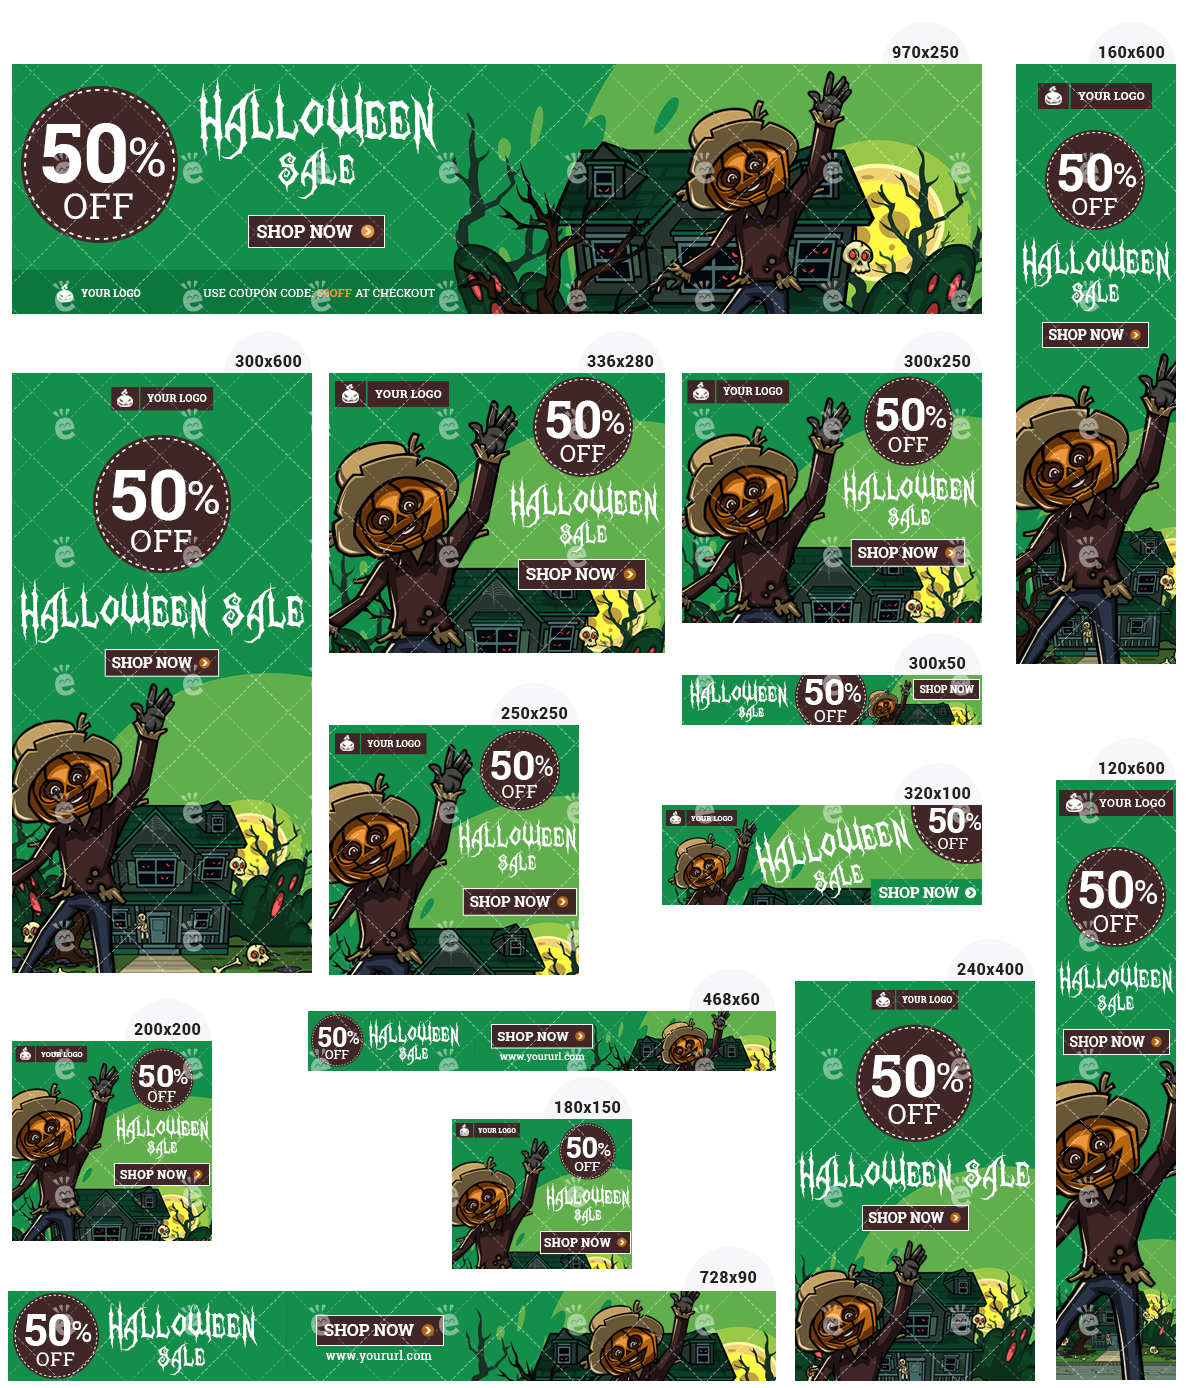 Halloween Banner Set 3 - Scarecrow And Haunted House